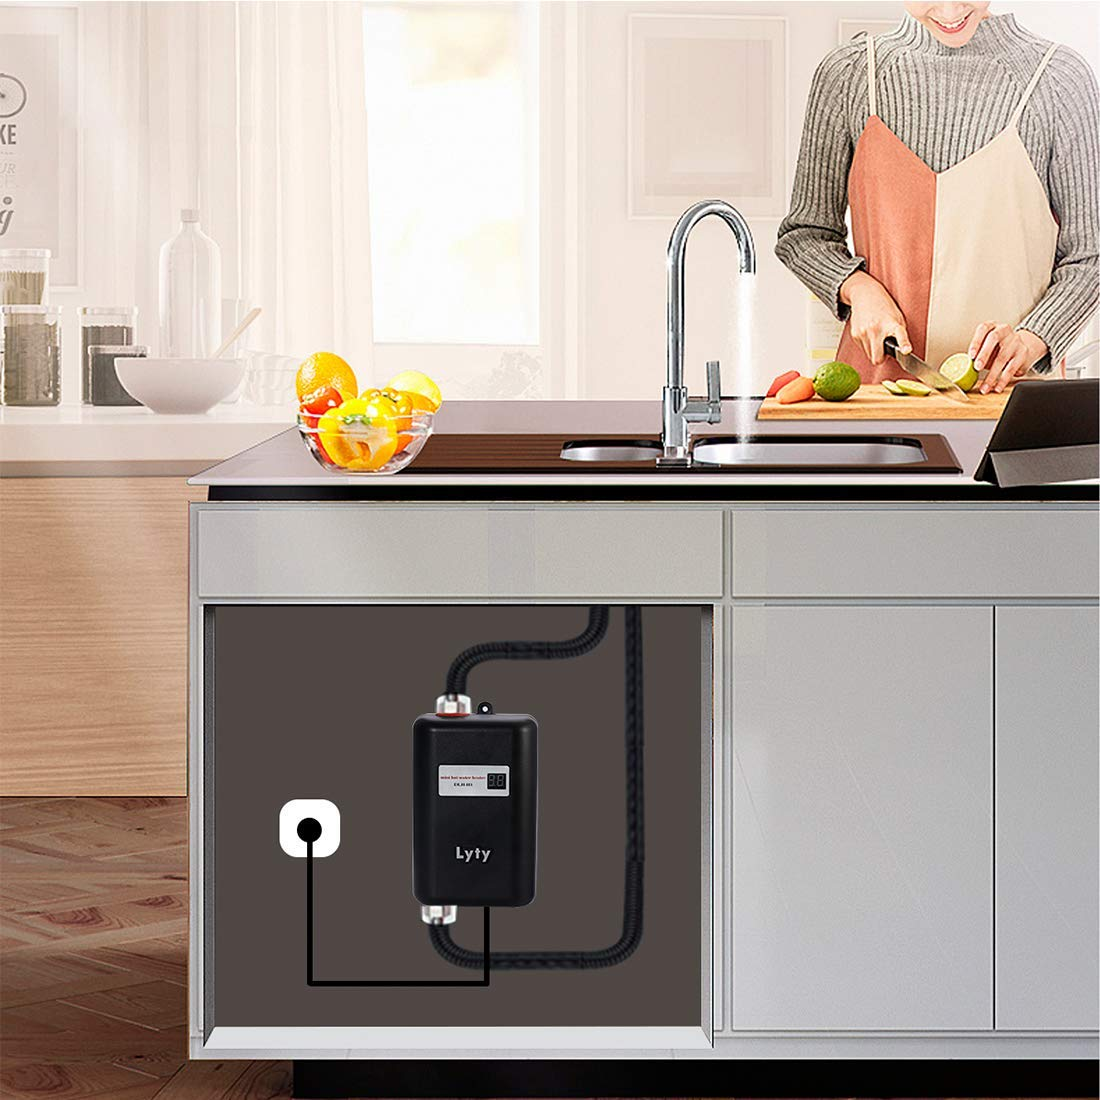 Mini Instant Water Heater Electric Under Sink - 3kW at 110v 120v Tankless Hot Water Heater for Hand/Face/Dishes Washing Kitchen Bathroom(Designed for Low Water Flow Use Only)(Black) by Lyty (Image #4)